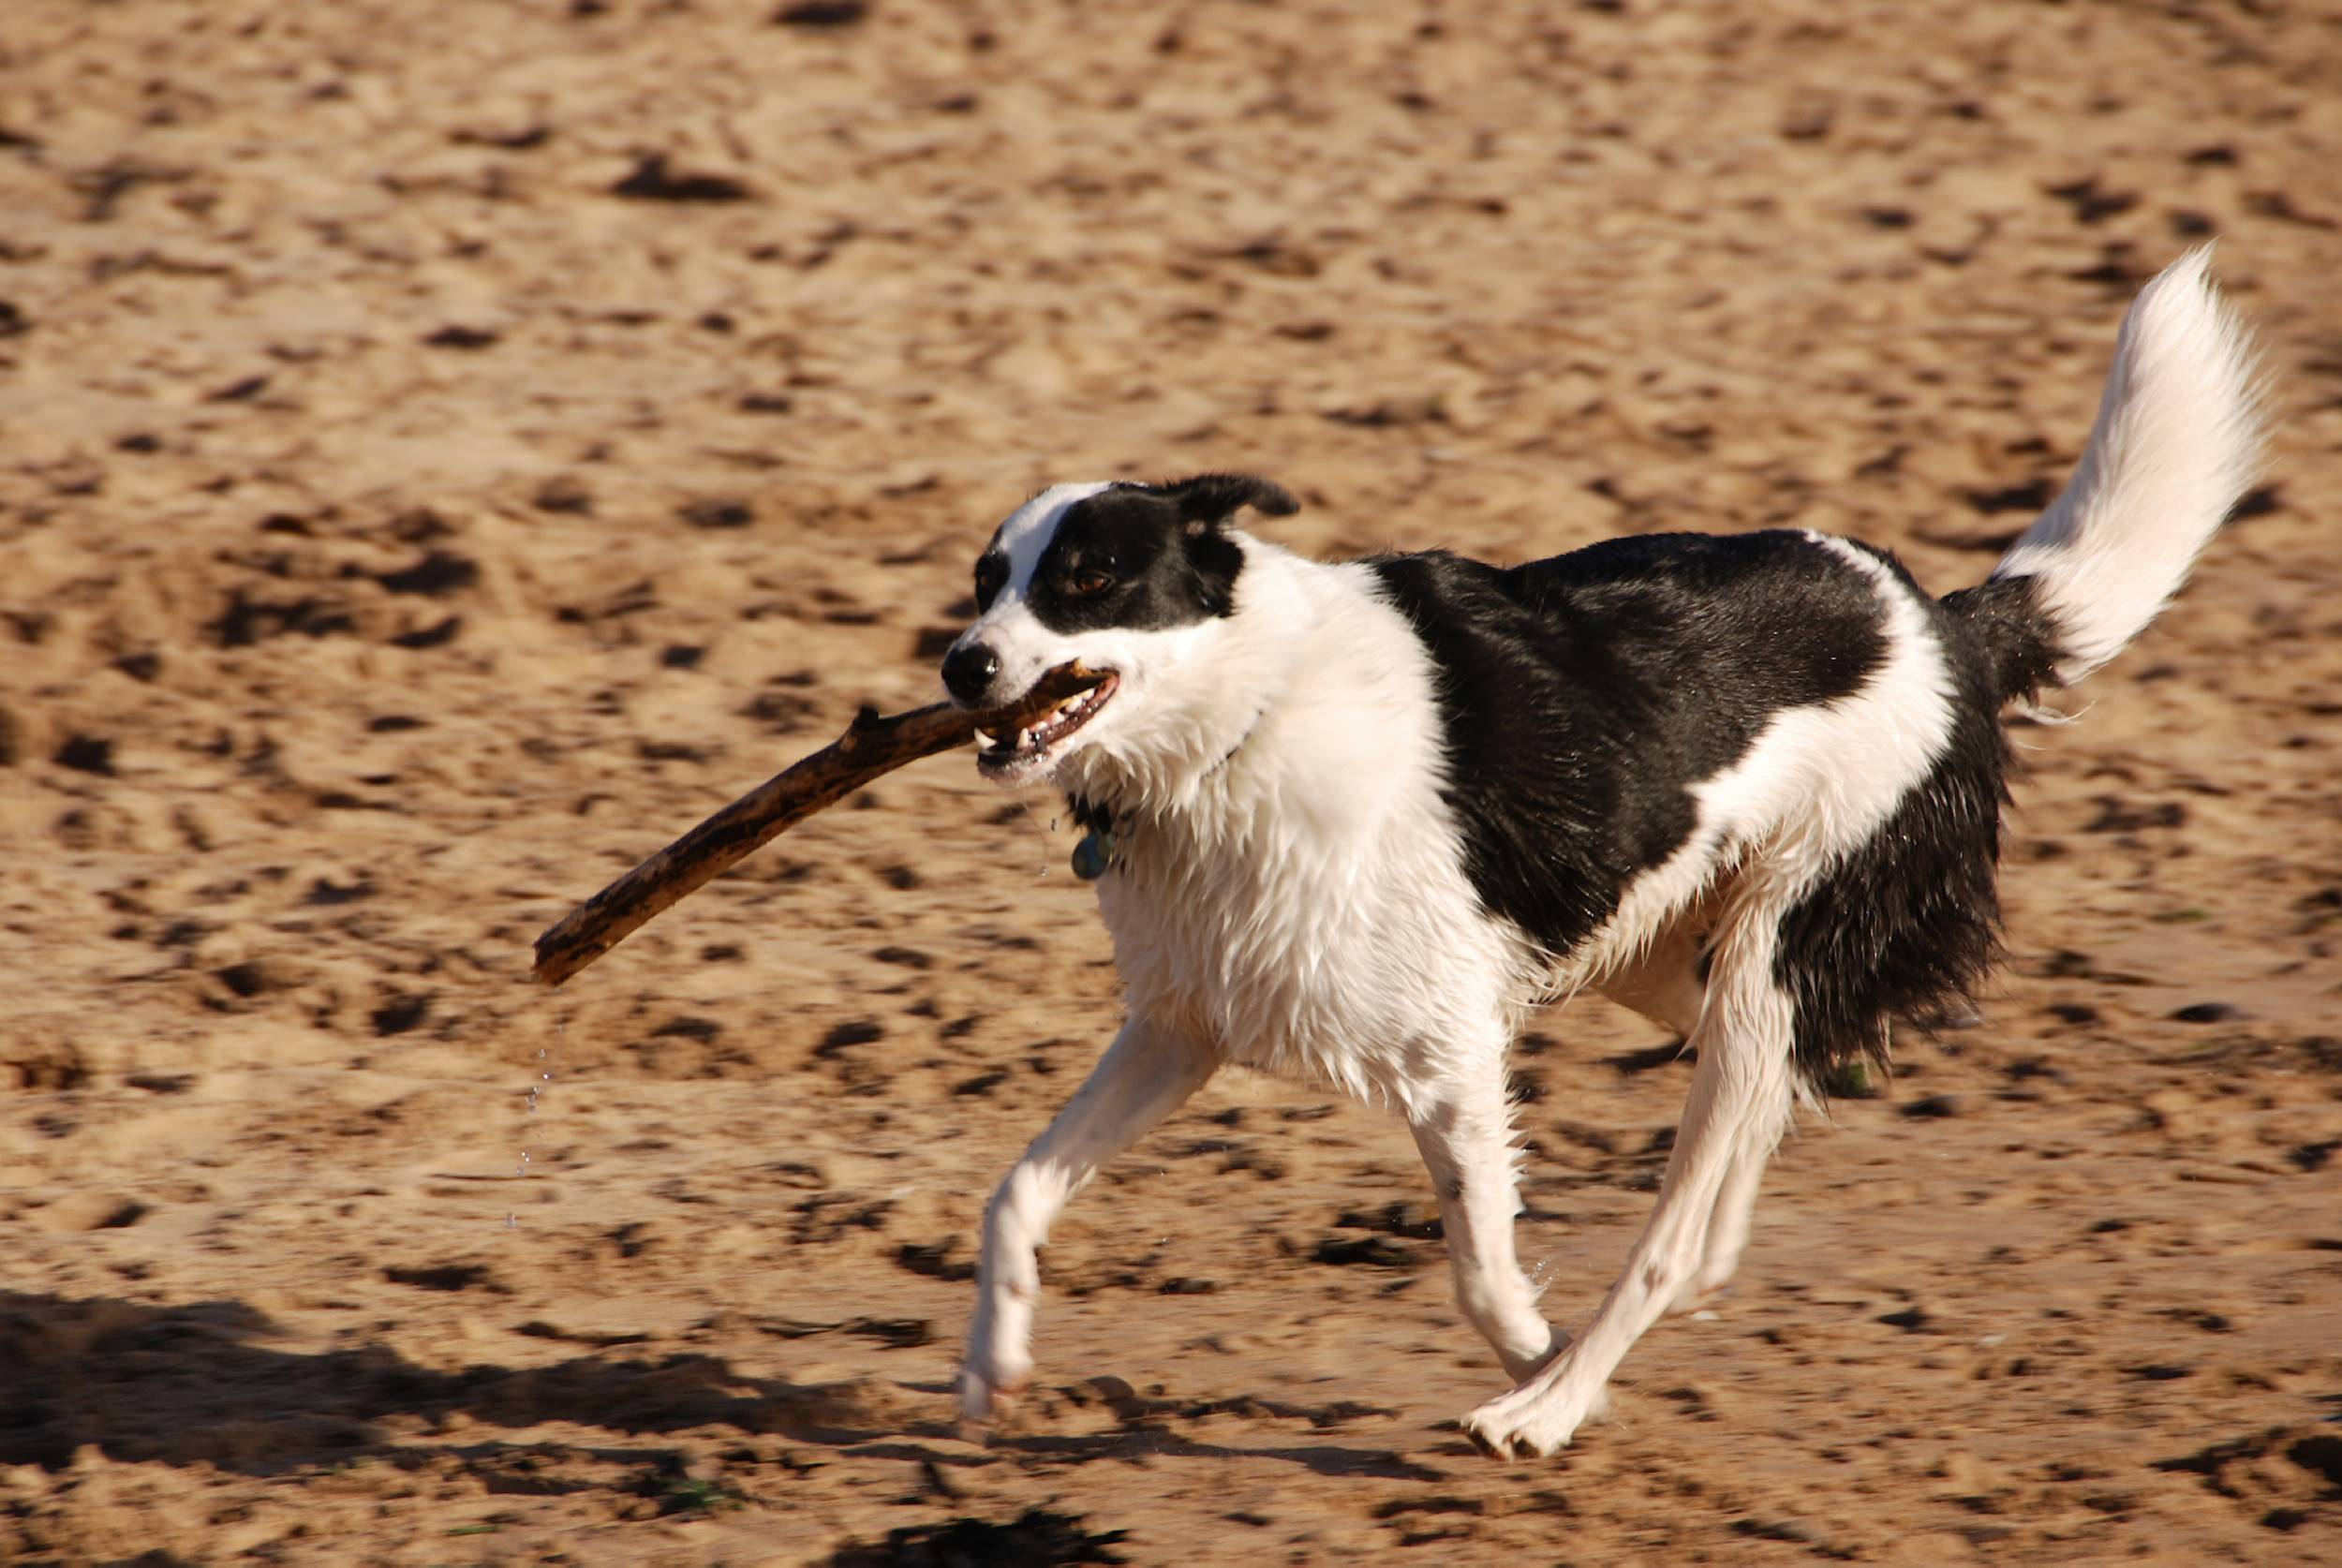 dog running on beach with stick in mouth